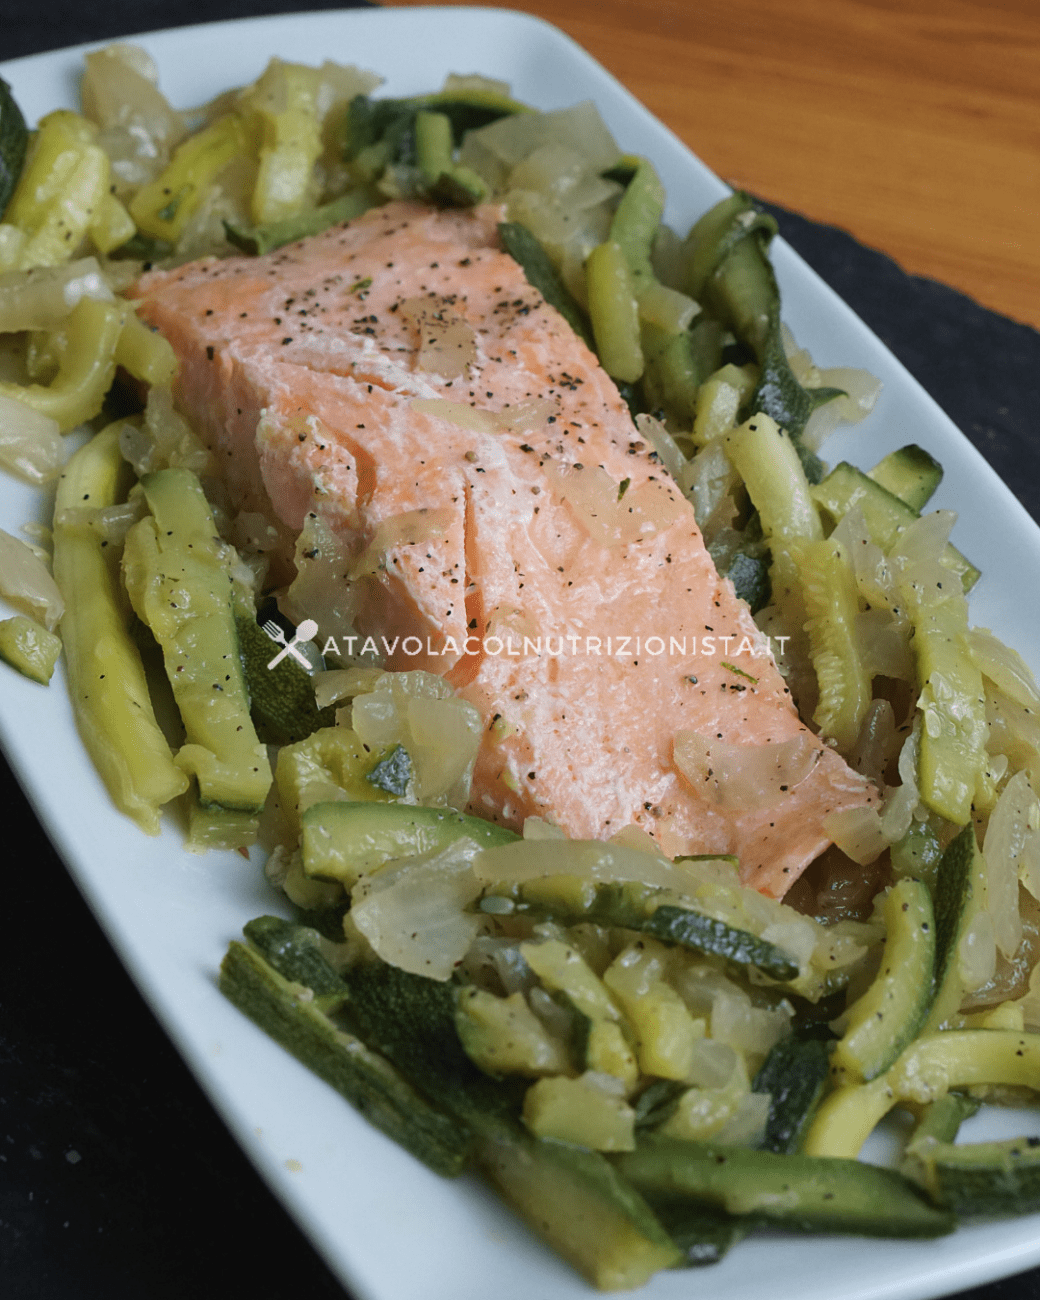 Filetto di salmone con zucchine julienne